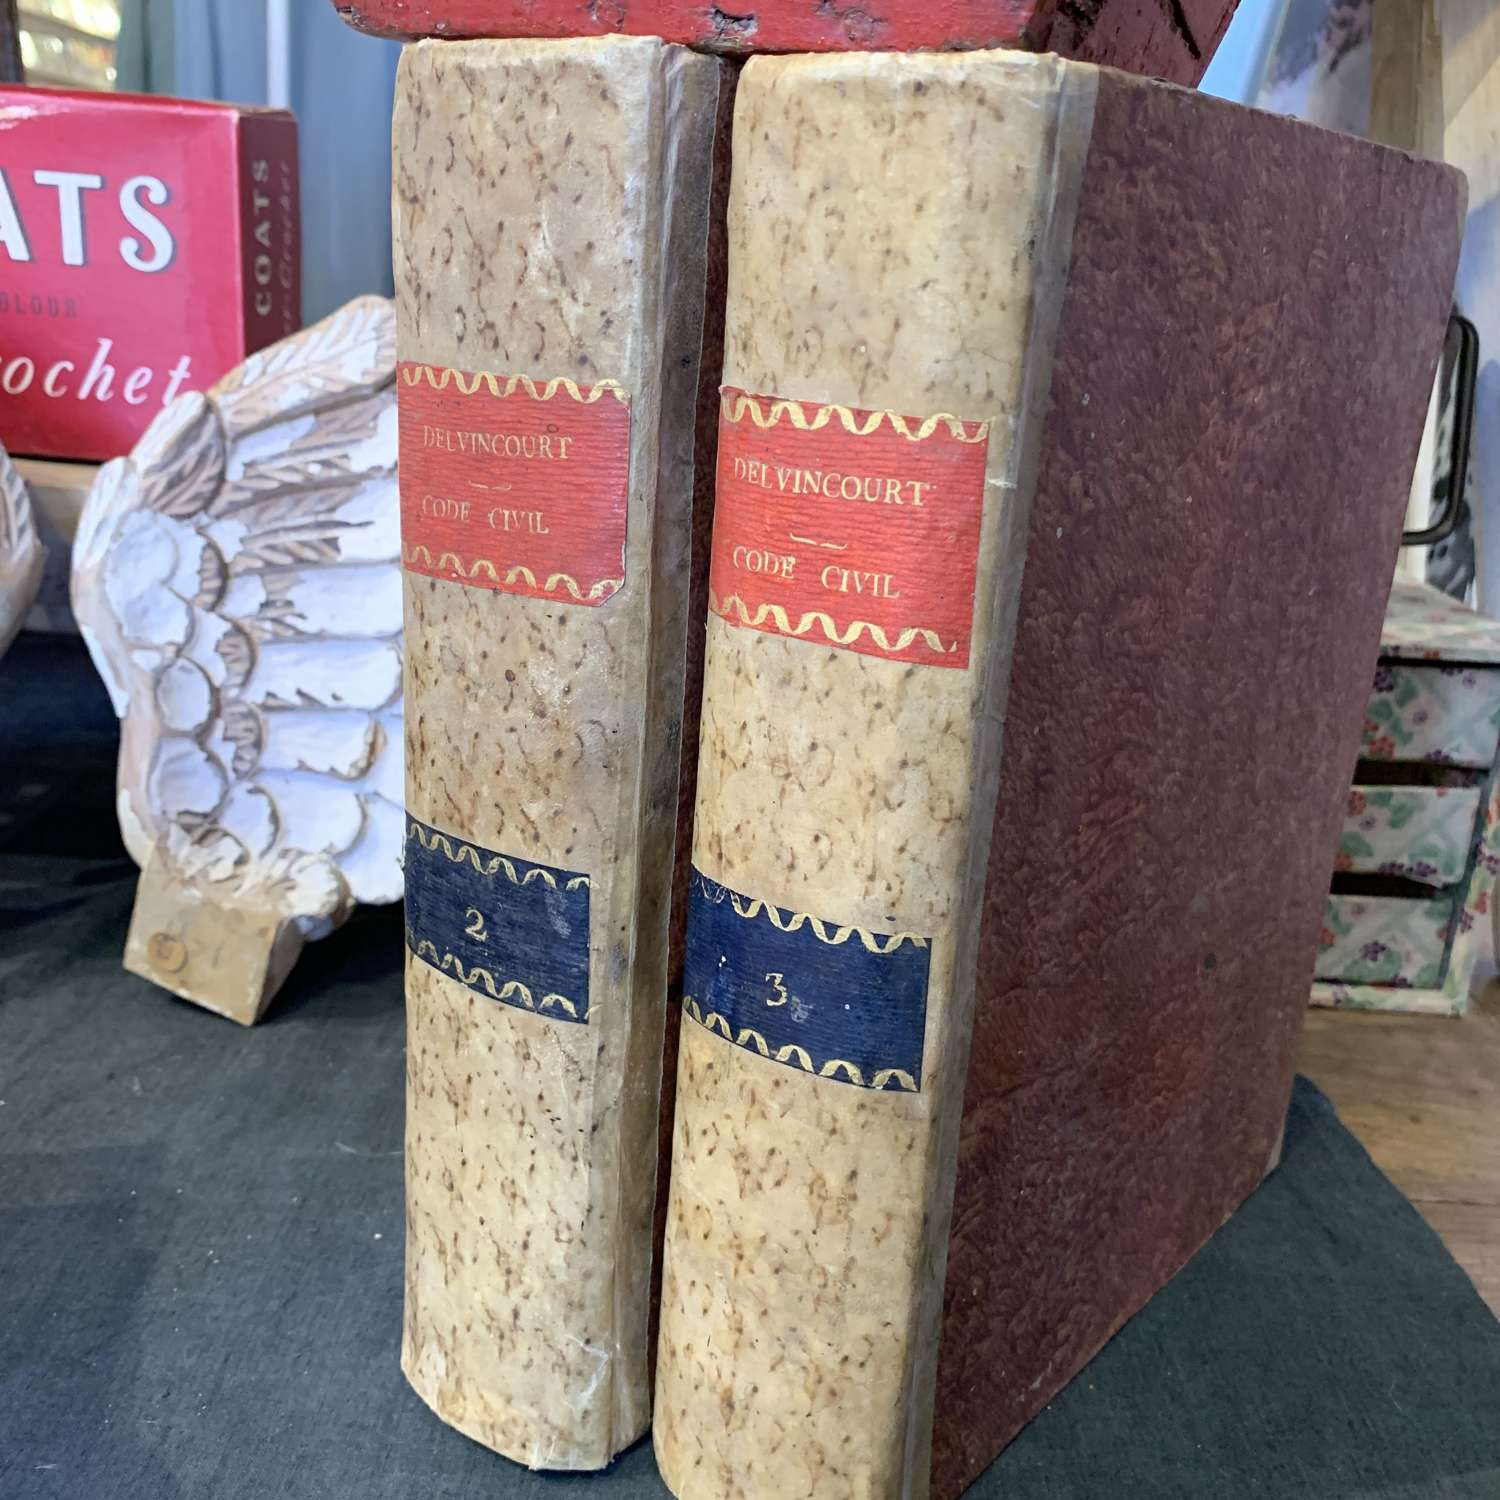 Two large decorative French books